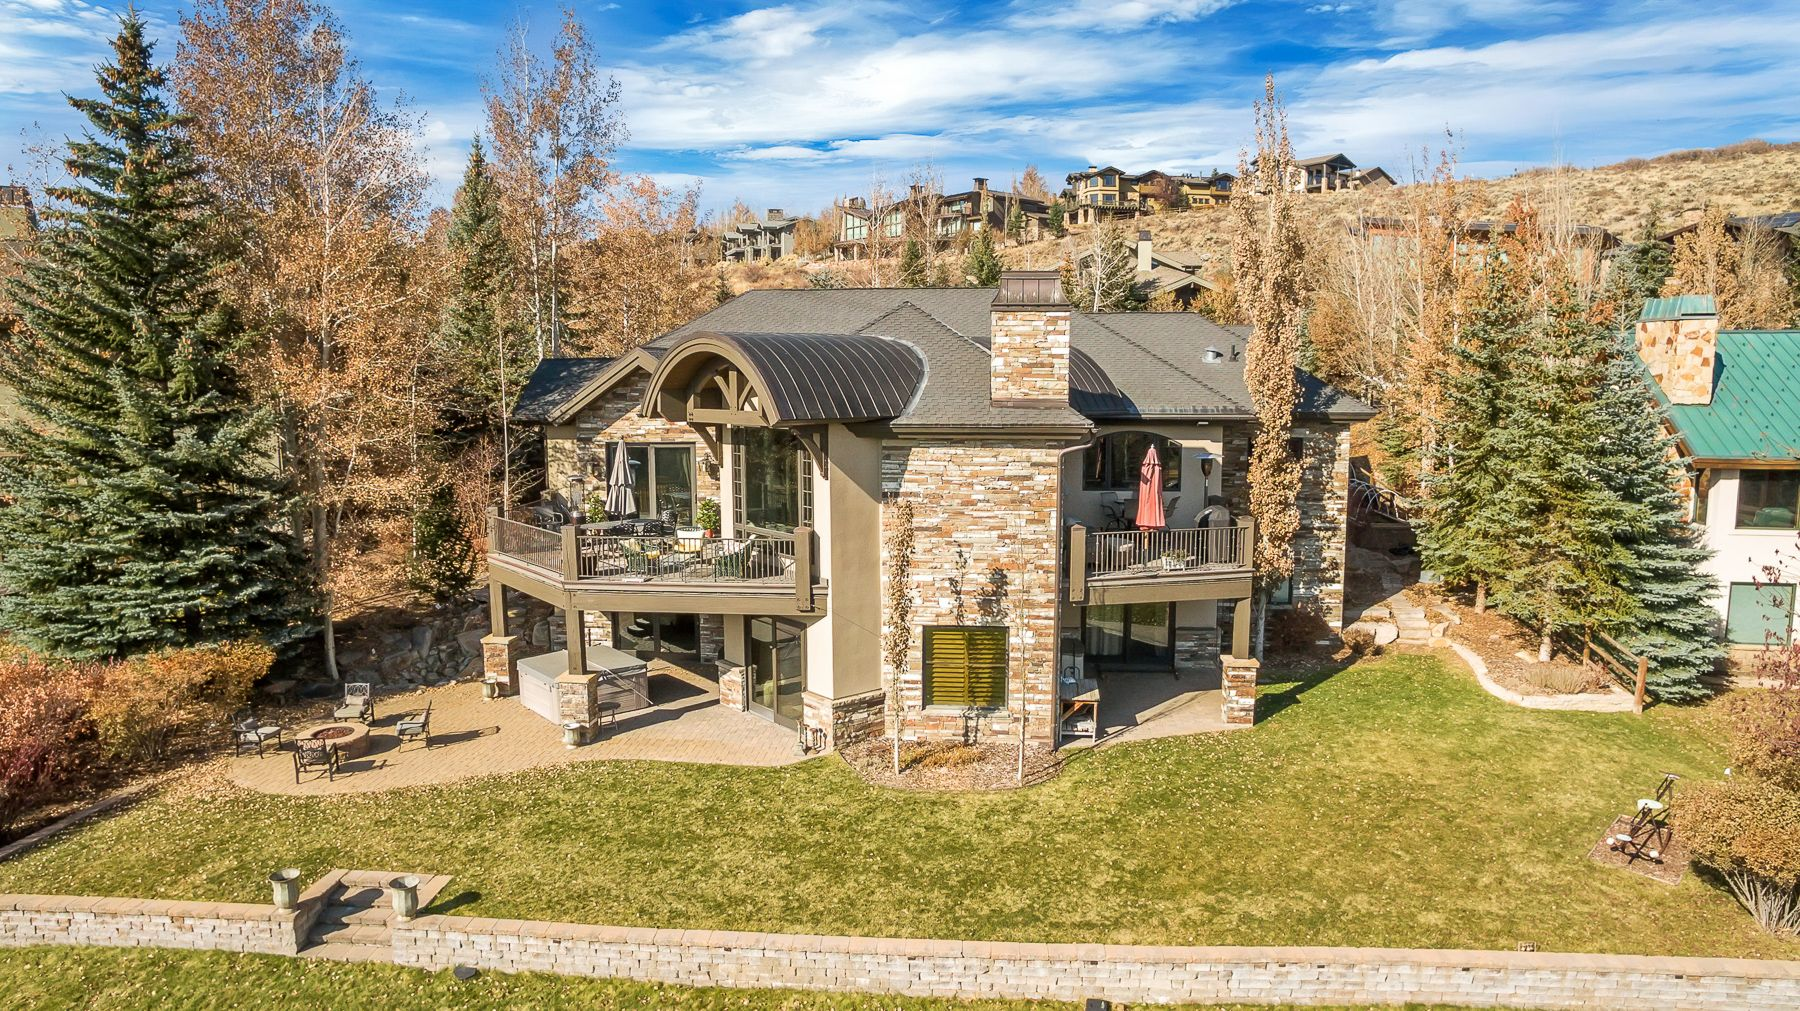 Exquisite fixtures and finishes, a large and open floor plan, and ski run and golf course views on the 11th fairway of the Park Meadows golf course make this home a must see. #WindermereUtah #RealEstate #UtahHomes #ParkCityRealEstate #DreamHome #HomeExterior #LuxuryHomes #LuxuryLifestyle #Luxury